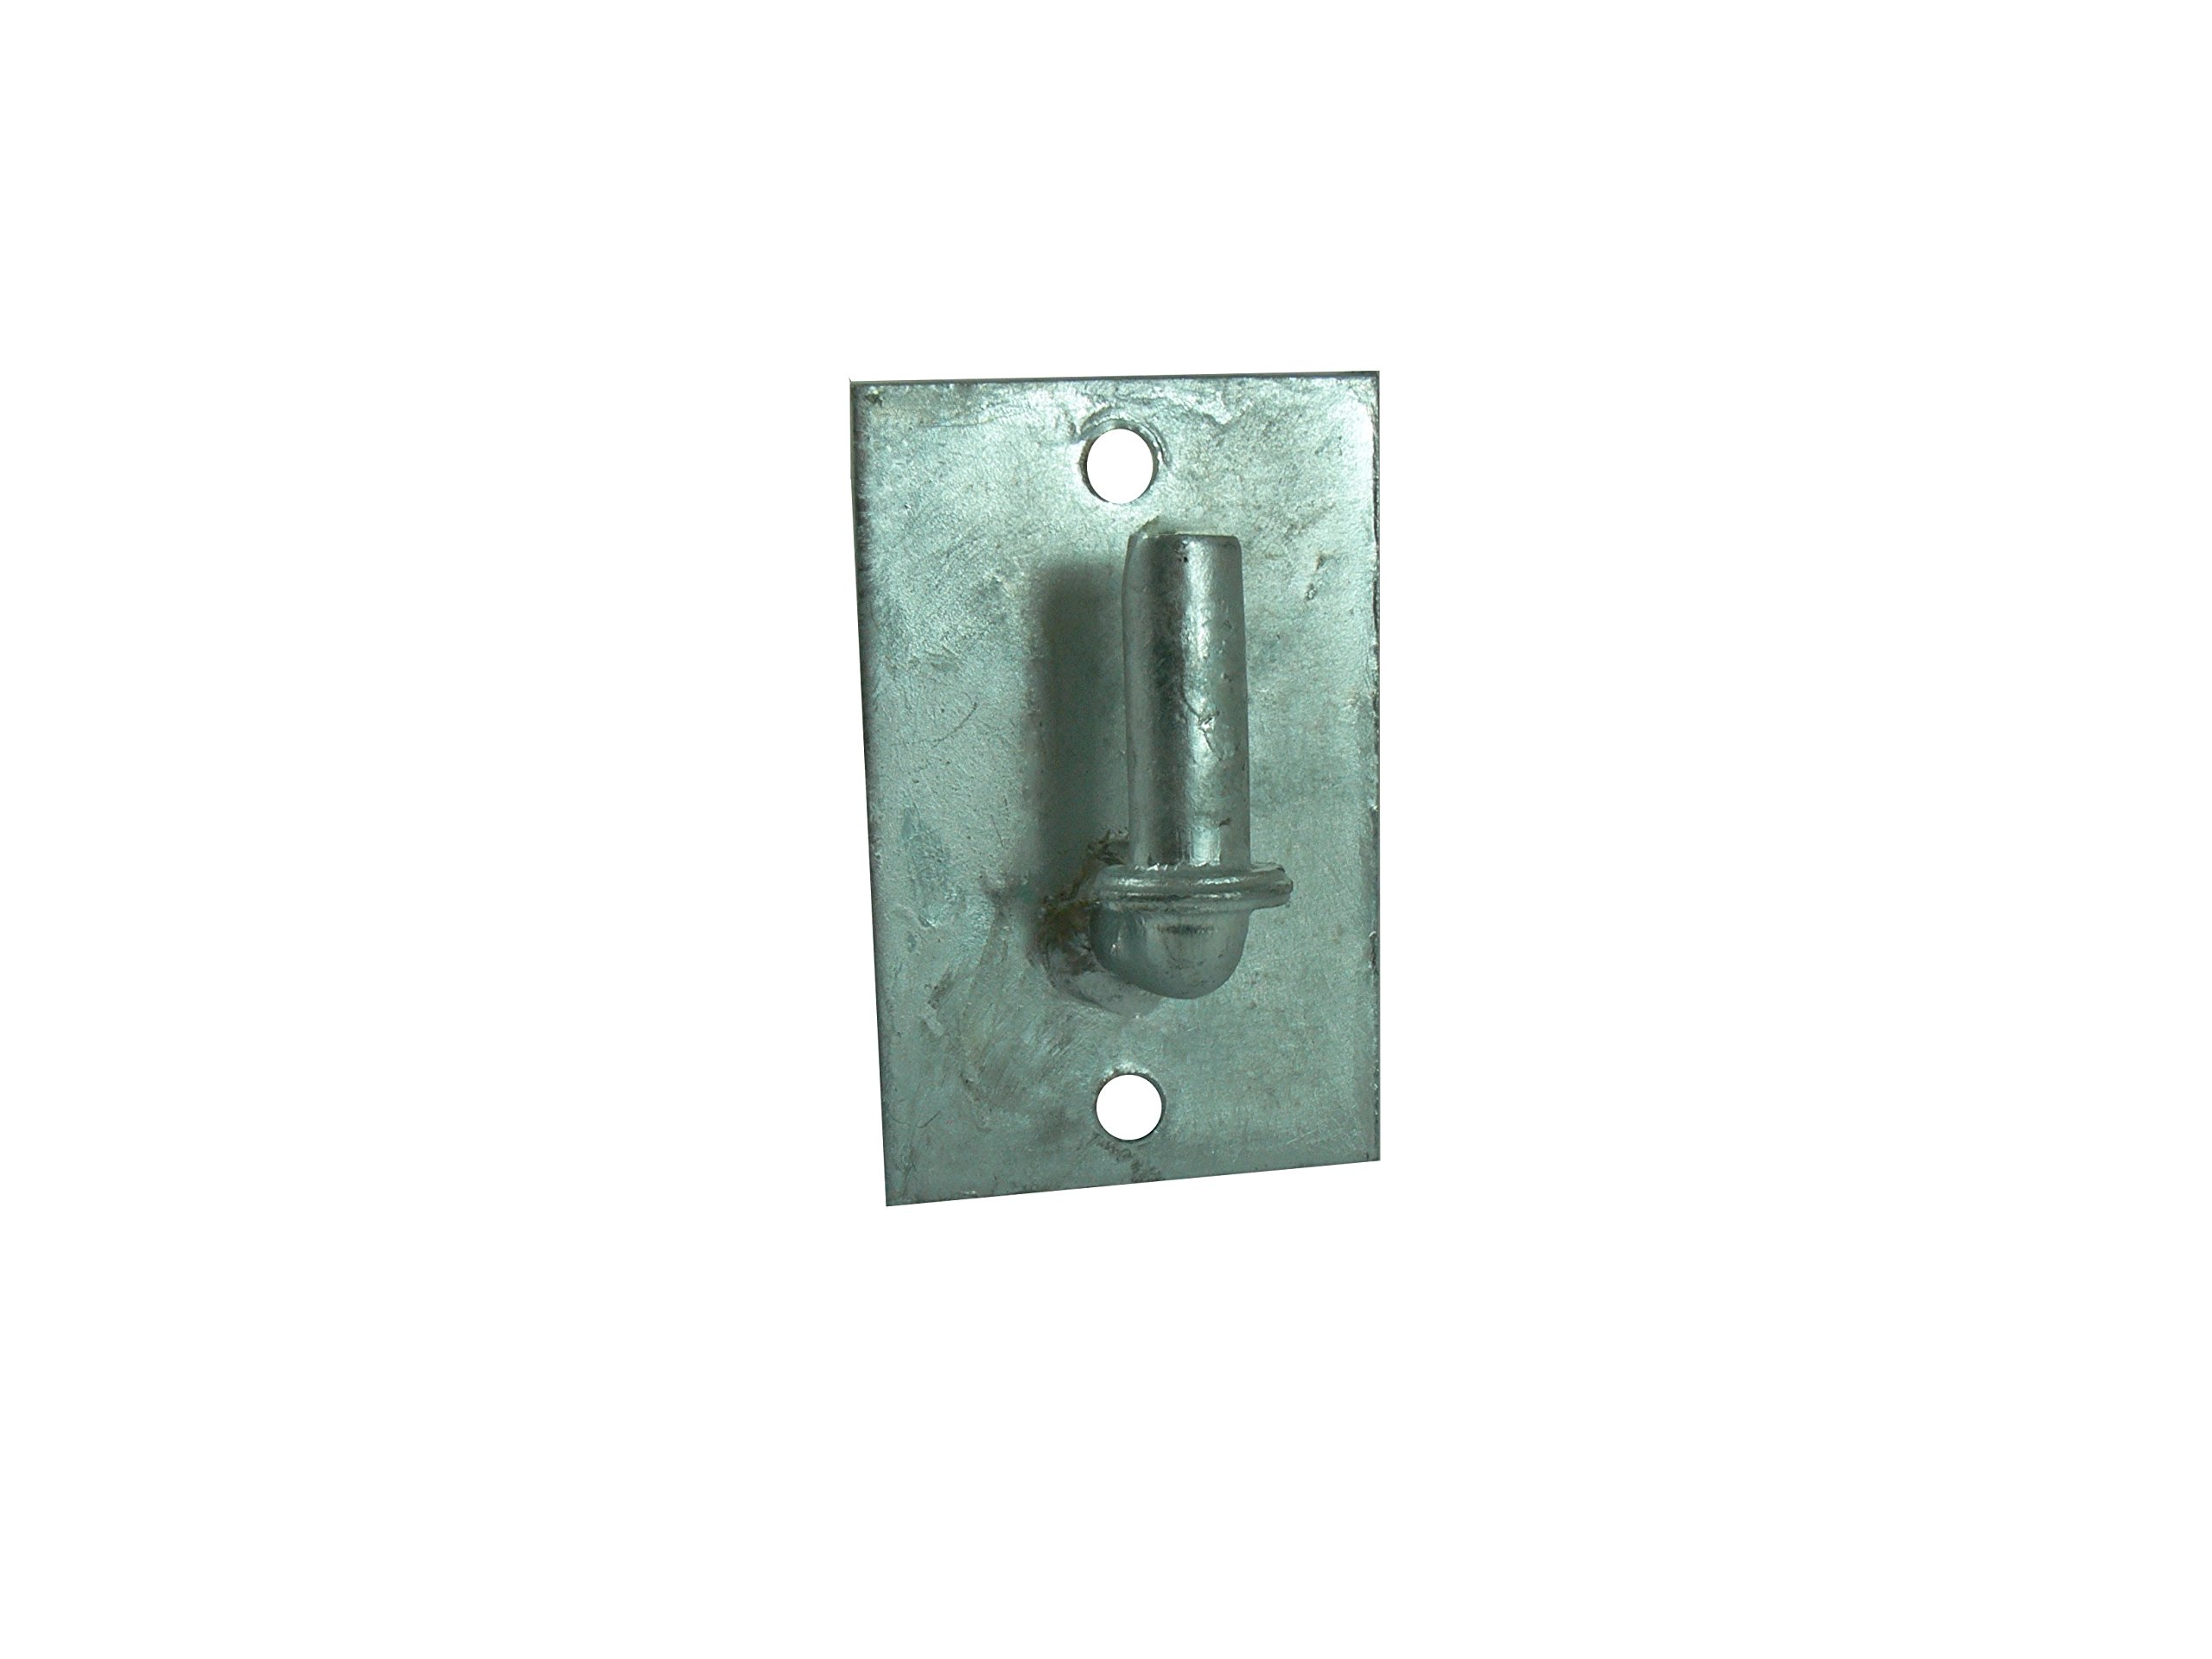 WALL PLATE HINGE, Chain Link Fence Gate Hinge, wall mount hinge